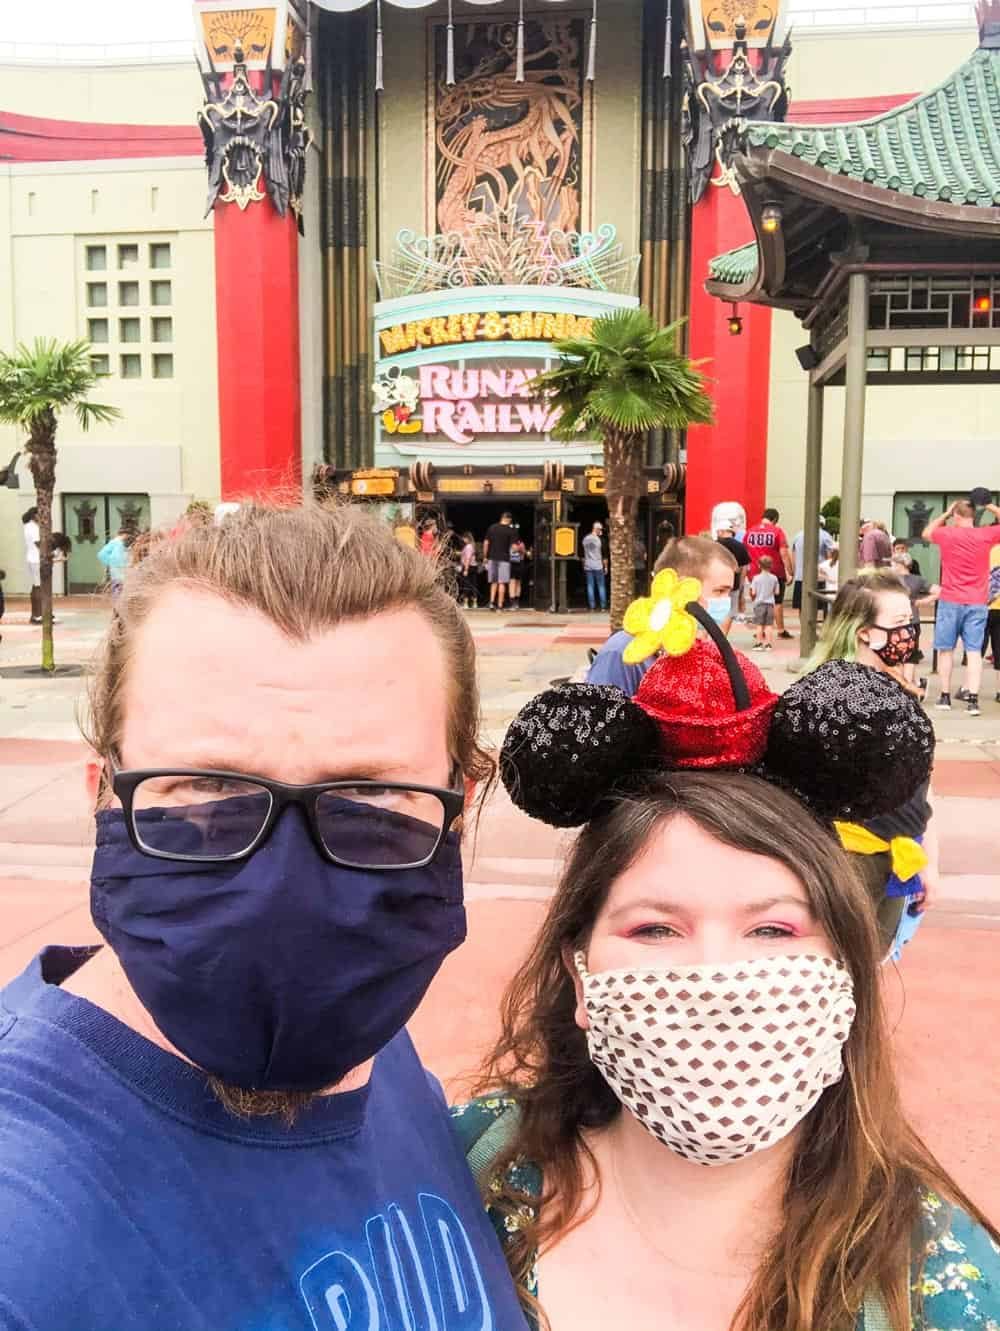 Did the Pandemic Erase All the Magic From Disney World, the Most Magical Place on Earth? 5